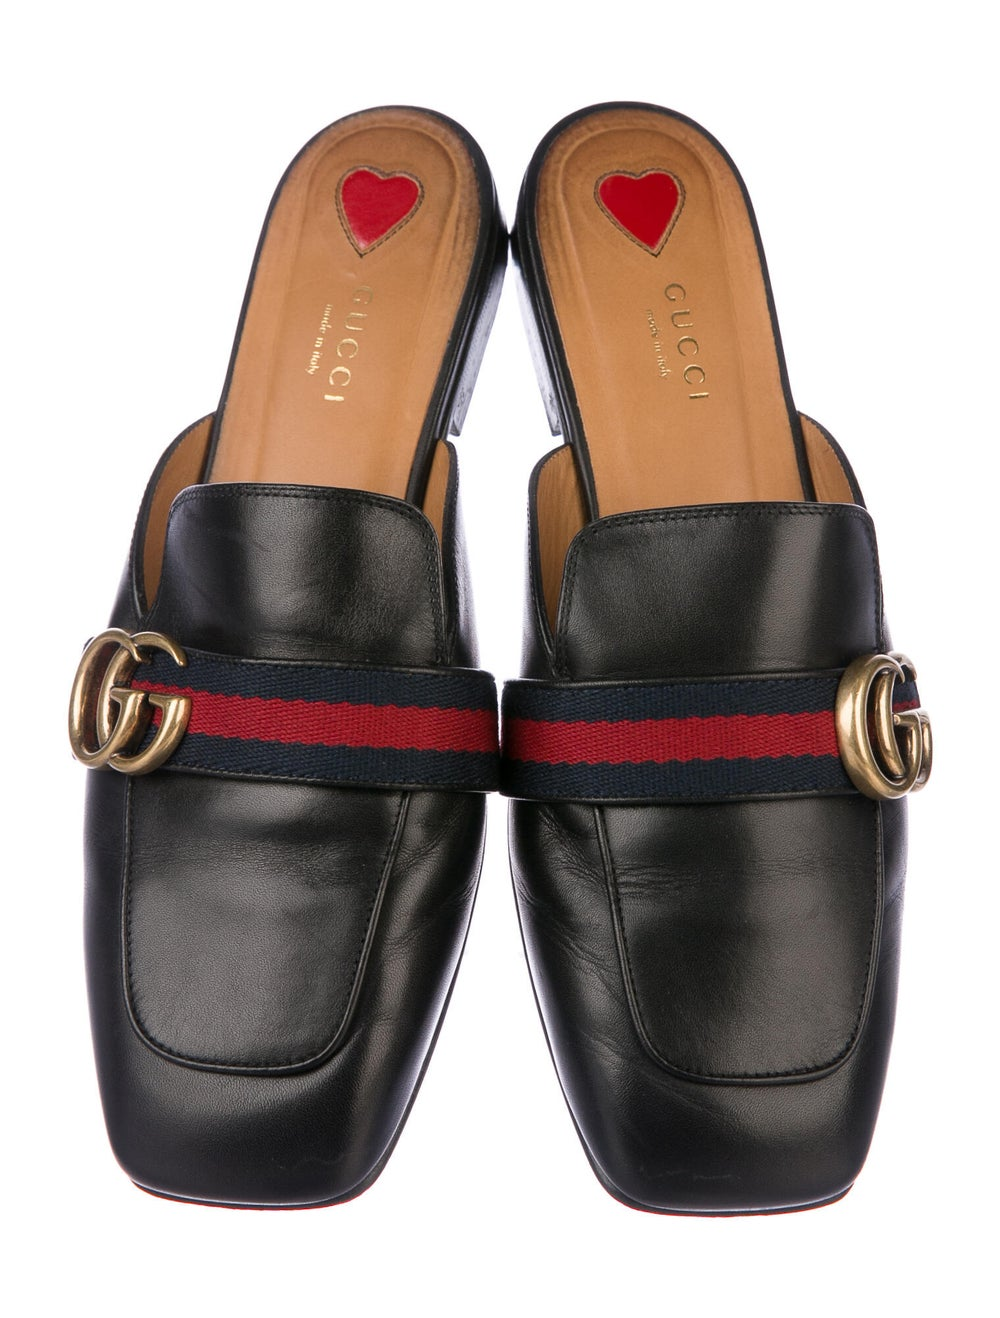 Gucci Web Accent Leather Mules Black - image 3